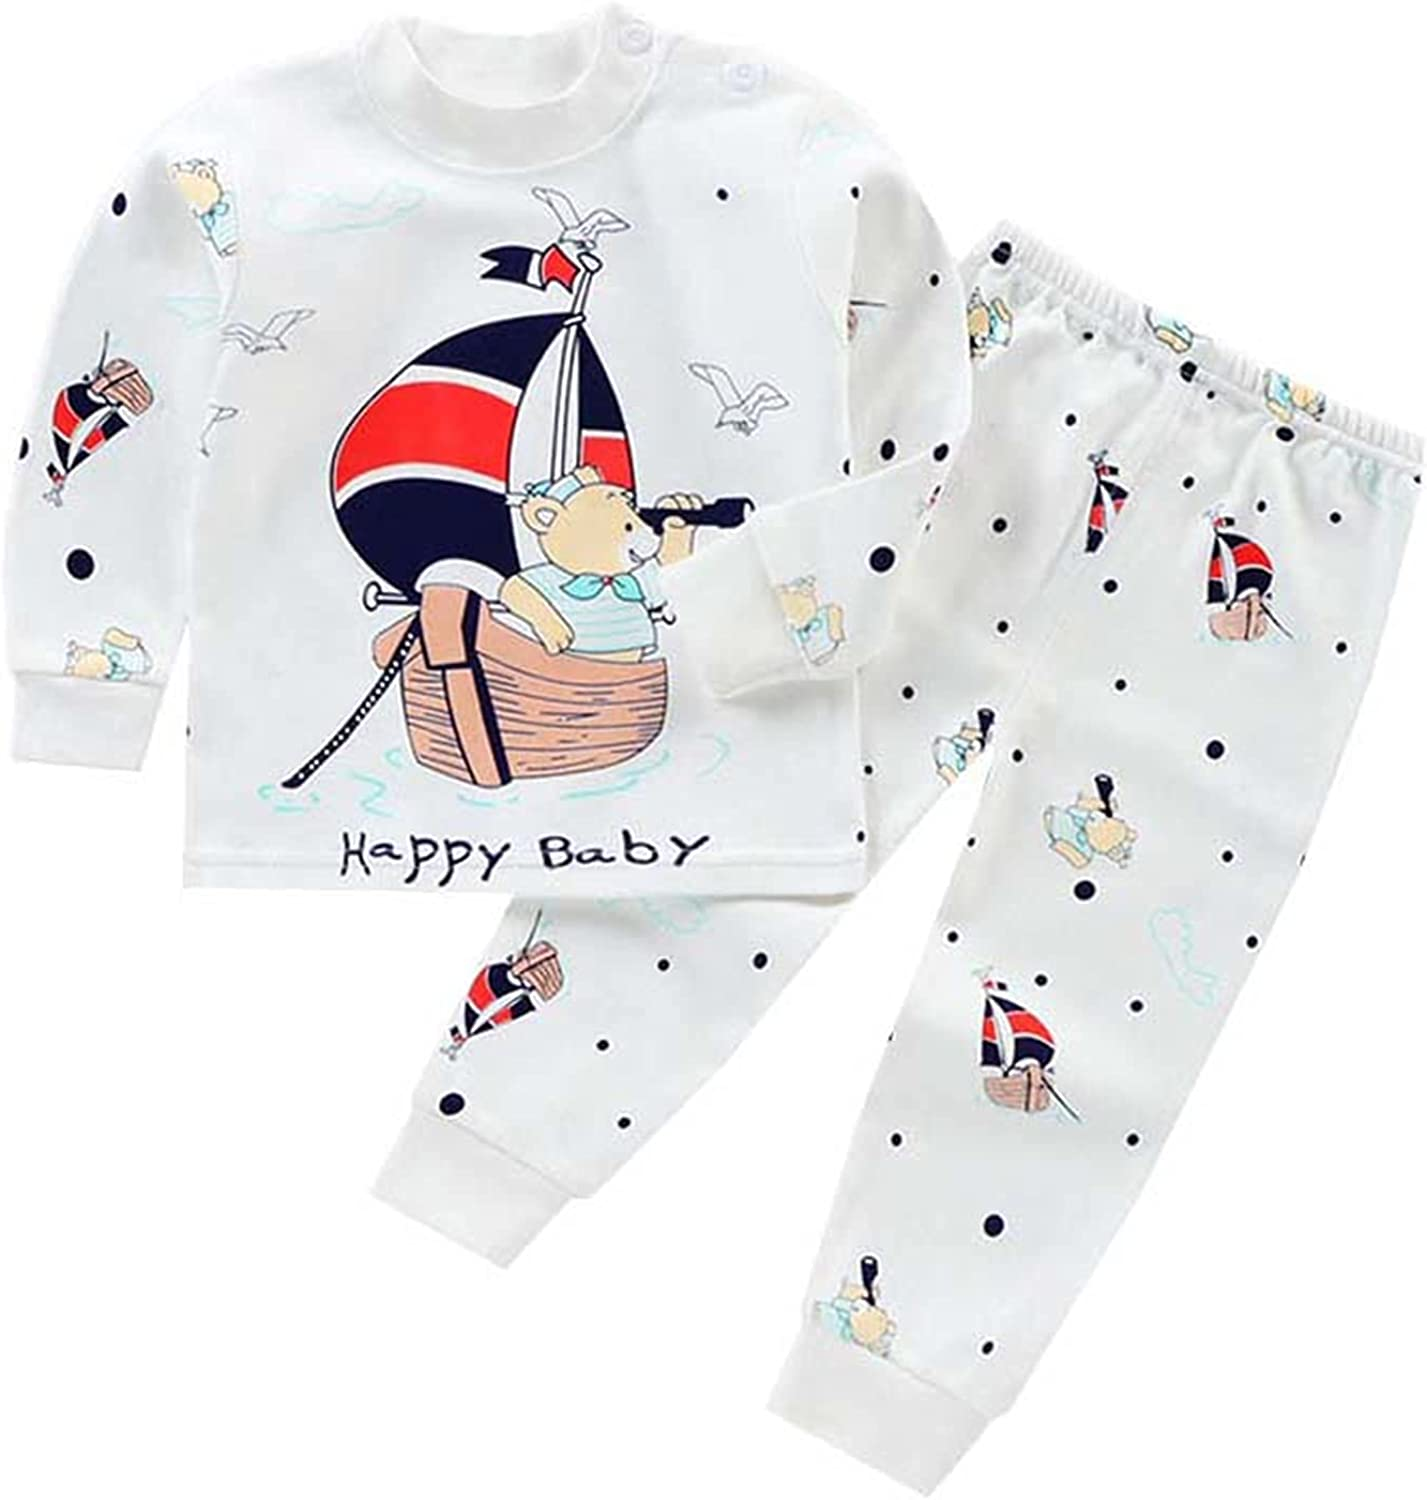 Schbbbta Cute Cartoon 2pcs PJ Sets for Girls, Boys and Toddlers, 6 Months - 8 Years